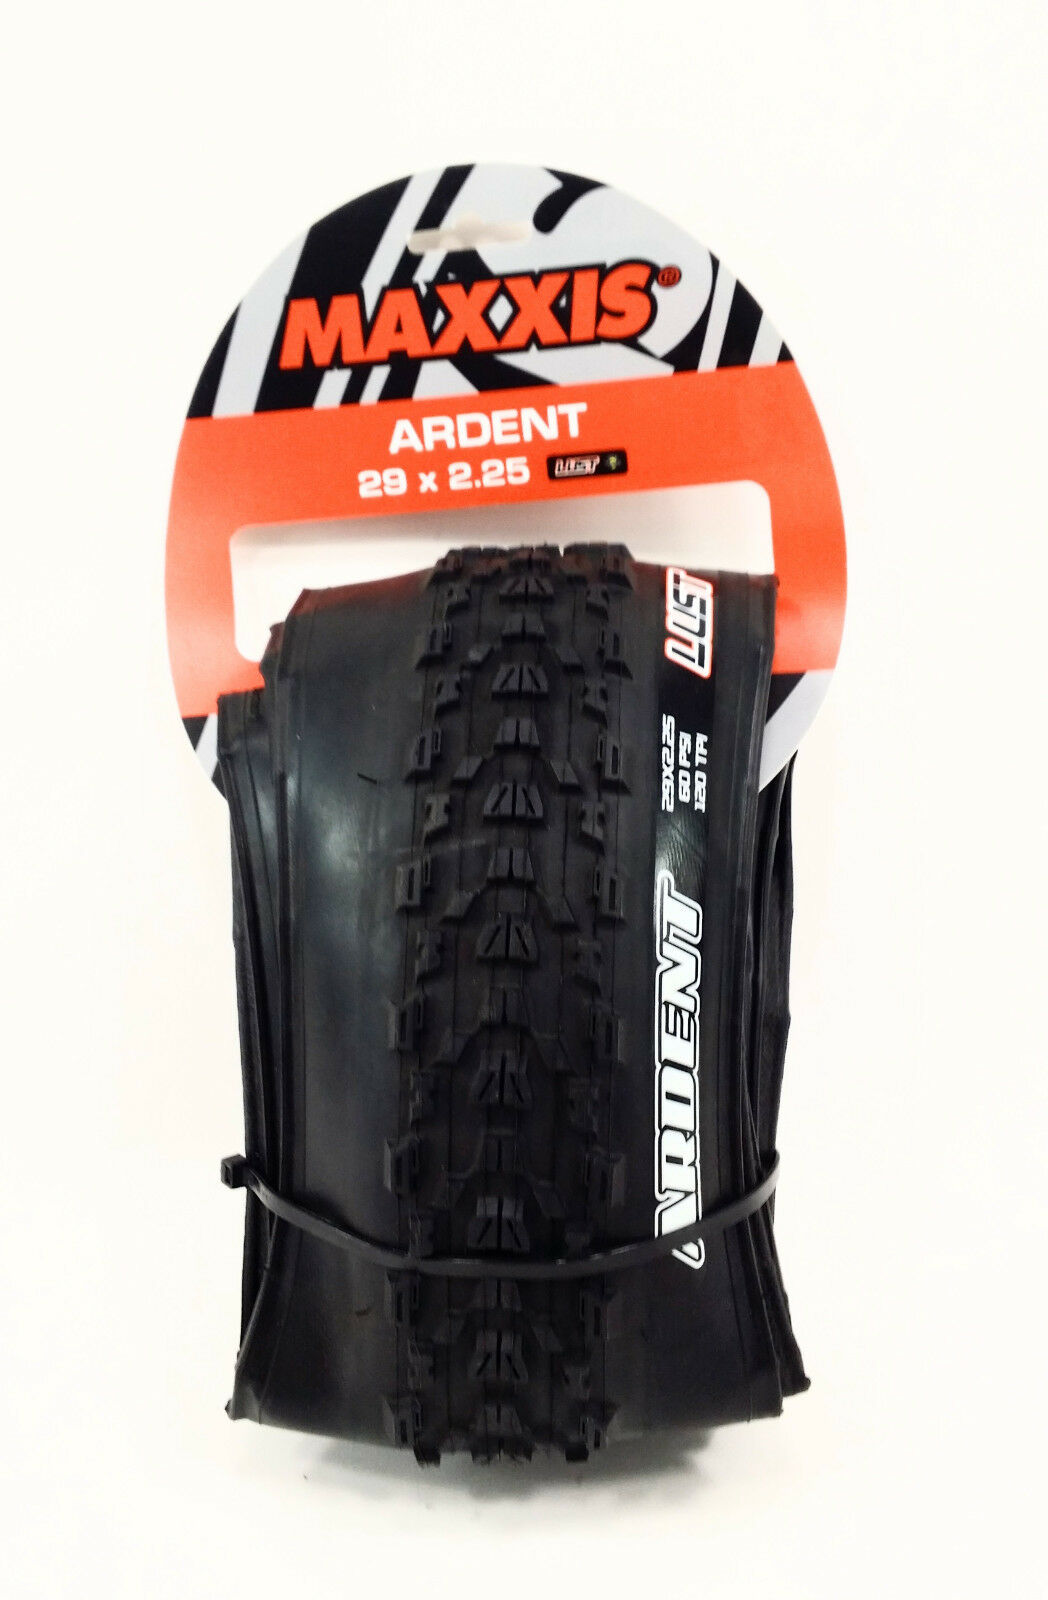 Maxxis Ardent DC UST 29 x 2.25 Tubeless 29er Mountain Bike Tire